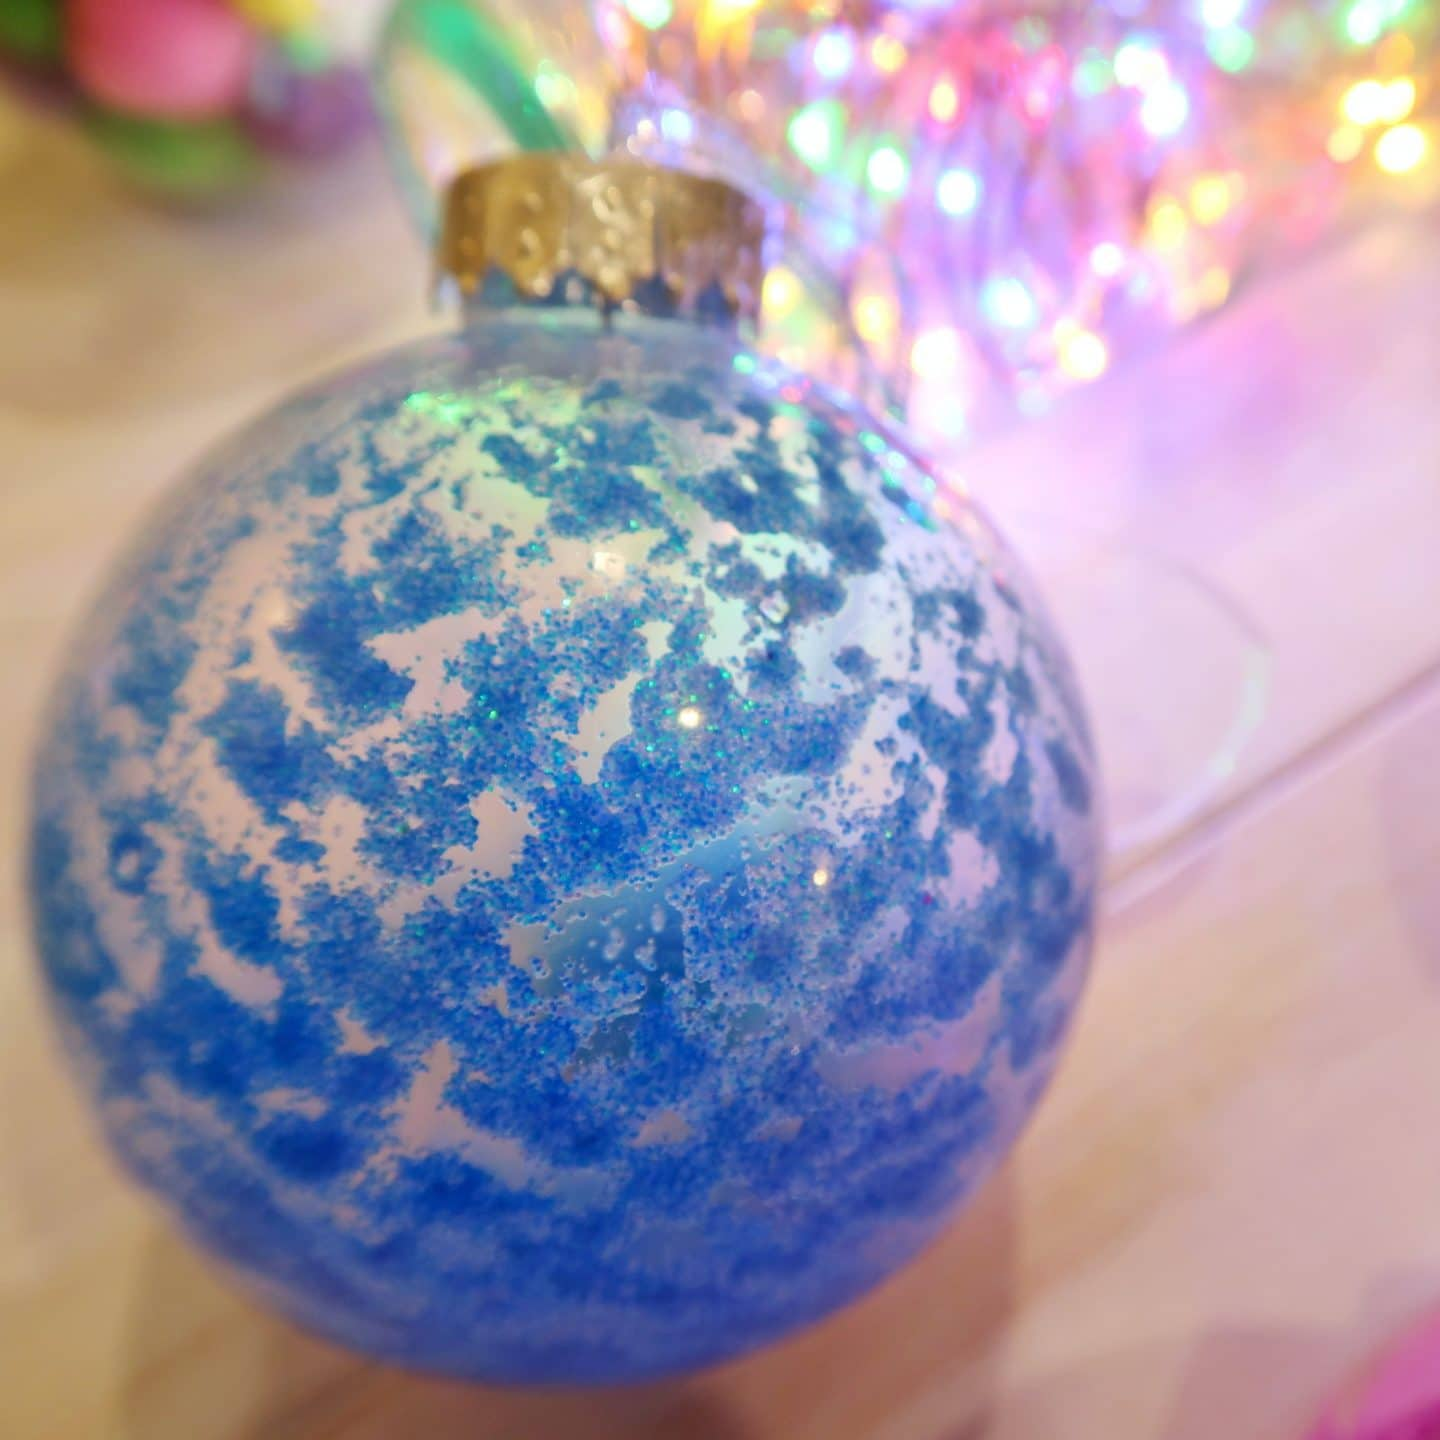 Blue, Glittery Christmas Bauble - sensory bauble craft